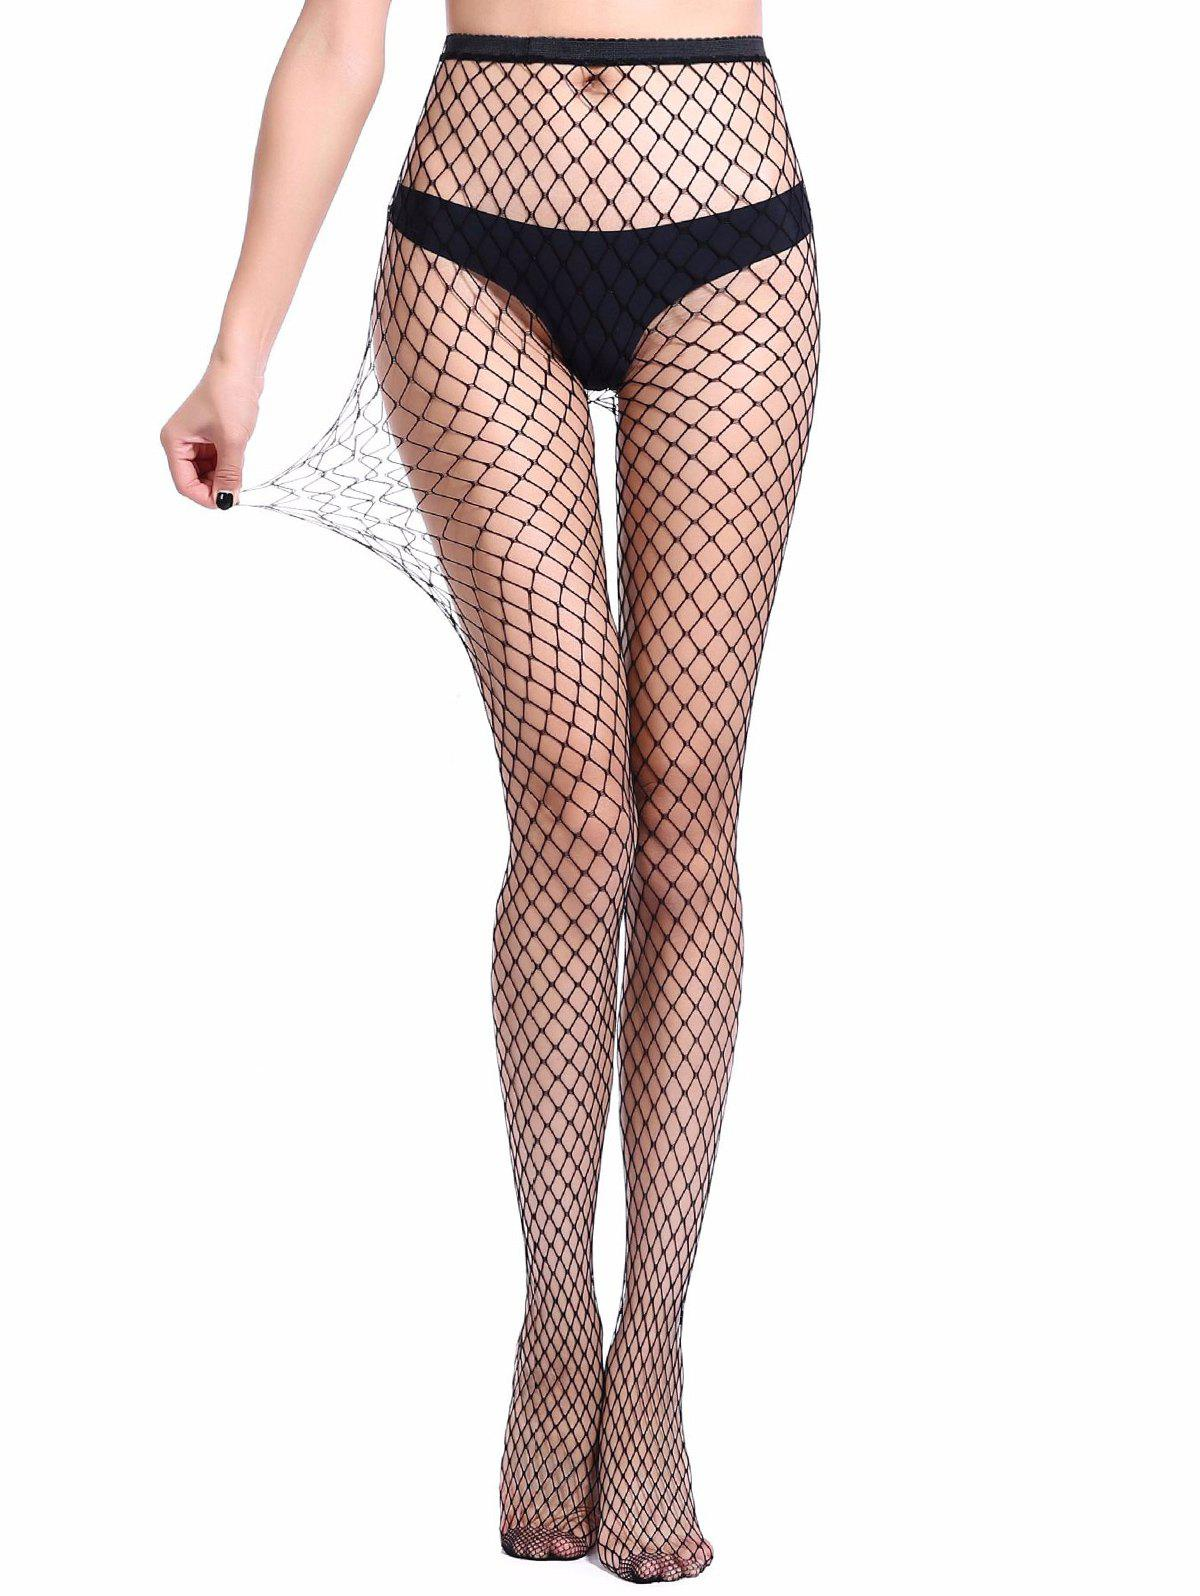 Sale Hollow Mesh Fishing Net Pantyhose